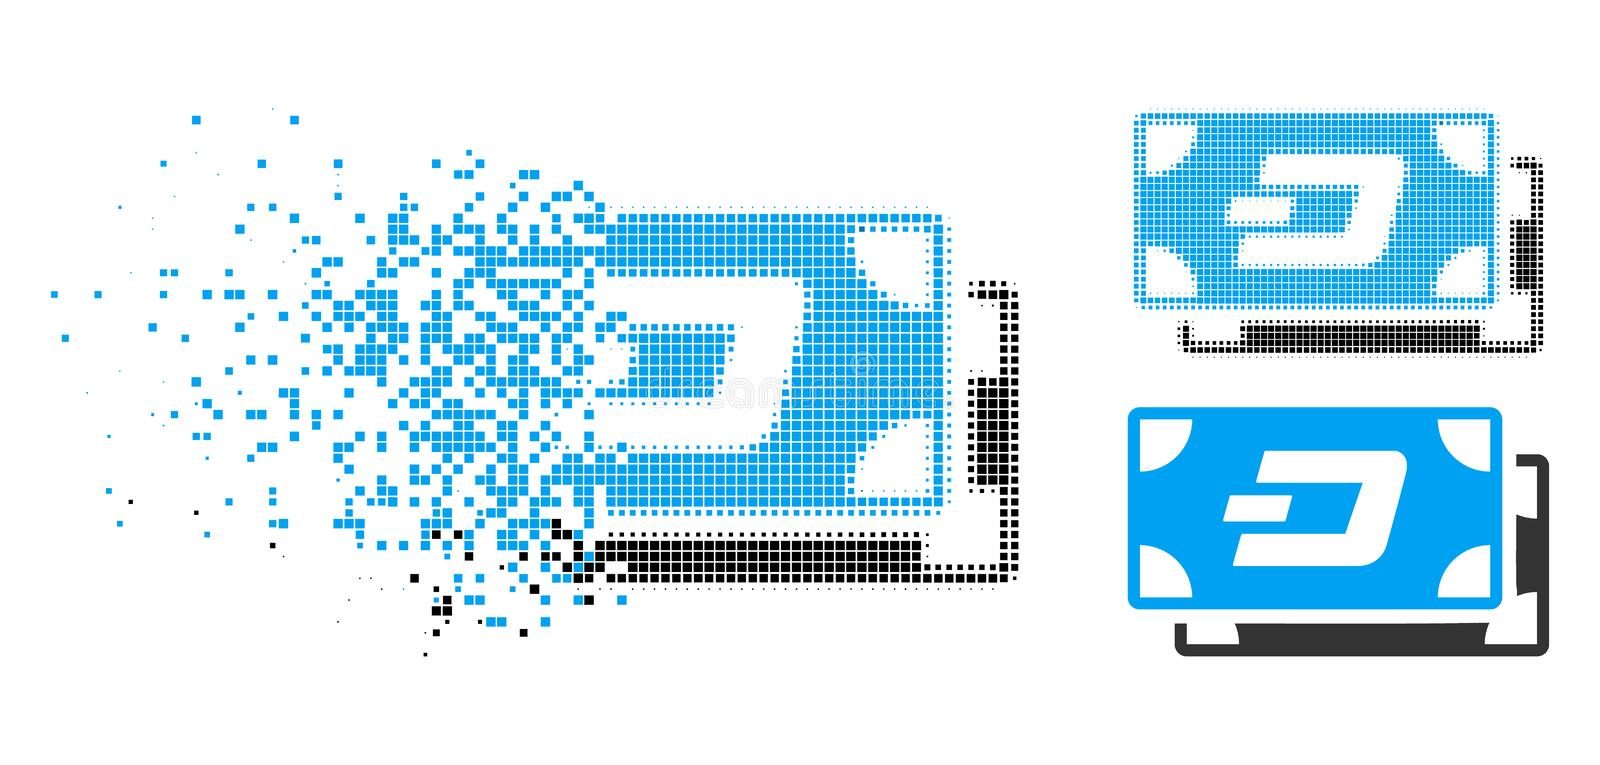 Shredded Pixelated Halftone Dash Banknotes Icon. Dash banknotes icon in dispersed, pixelated halftone and undamaged whole variants. Pixels are grouped into royalty free illustration